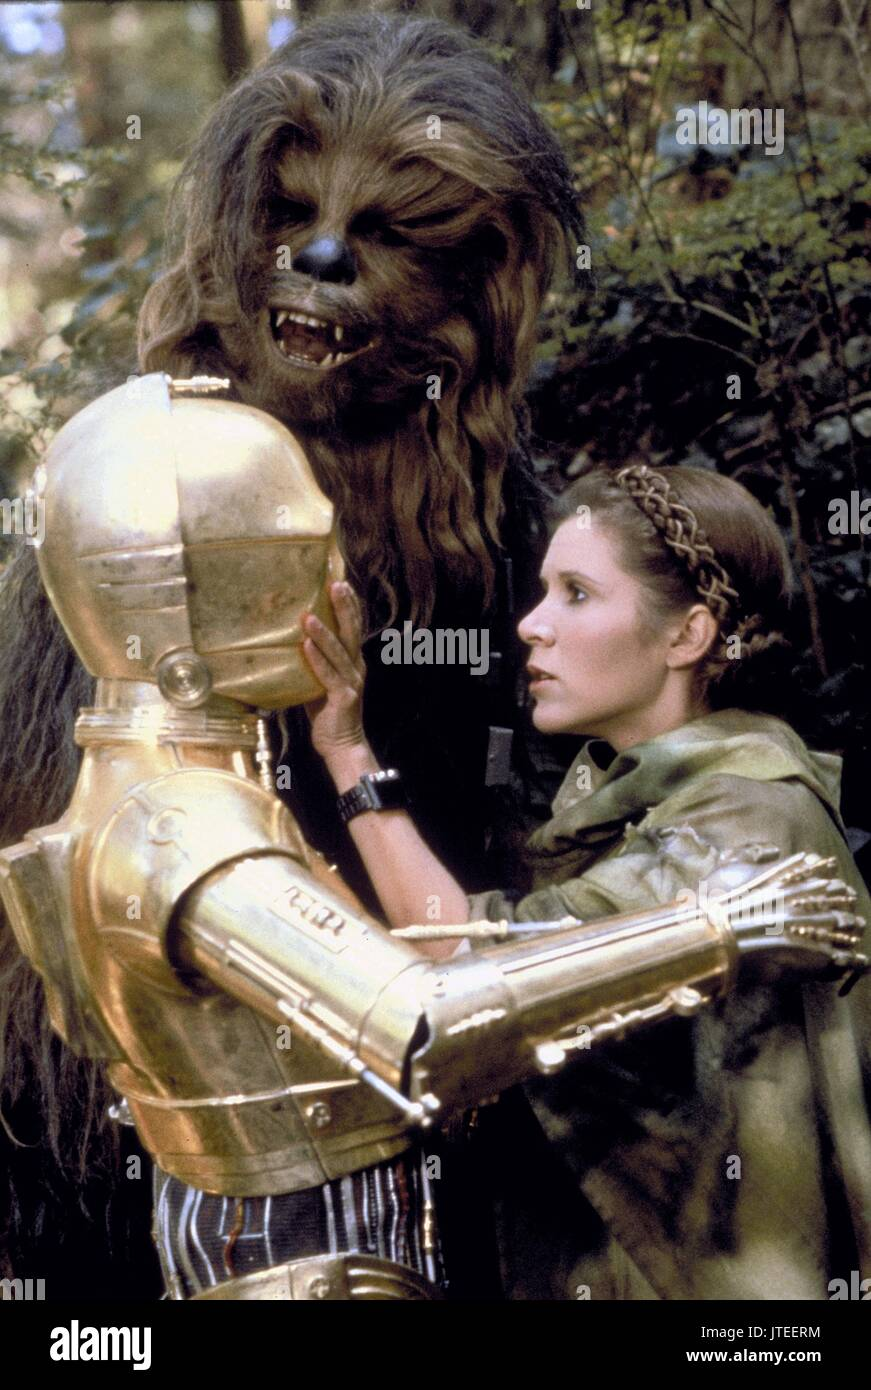 ANTHONY DANIELS PETER MAYHEW & CARRIE FISHER STAR WARS: EPISODE VI - RETURN OF THE JEDI (1983) - Stock Image